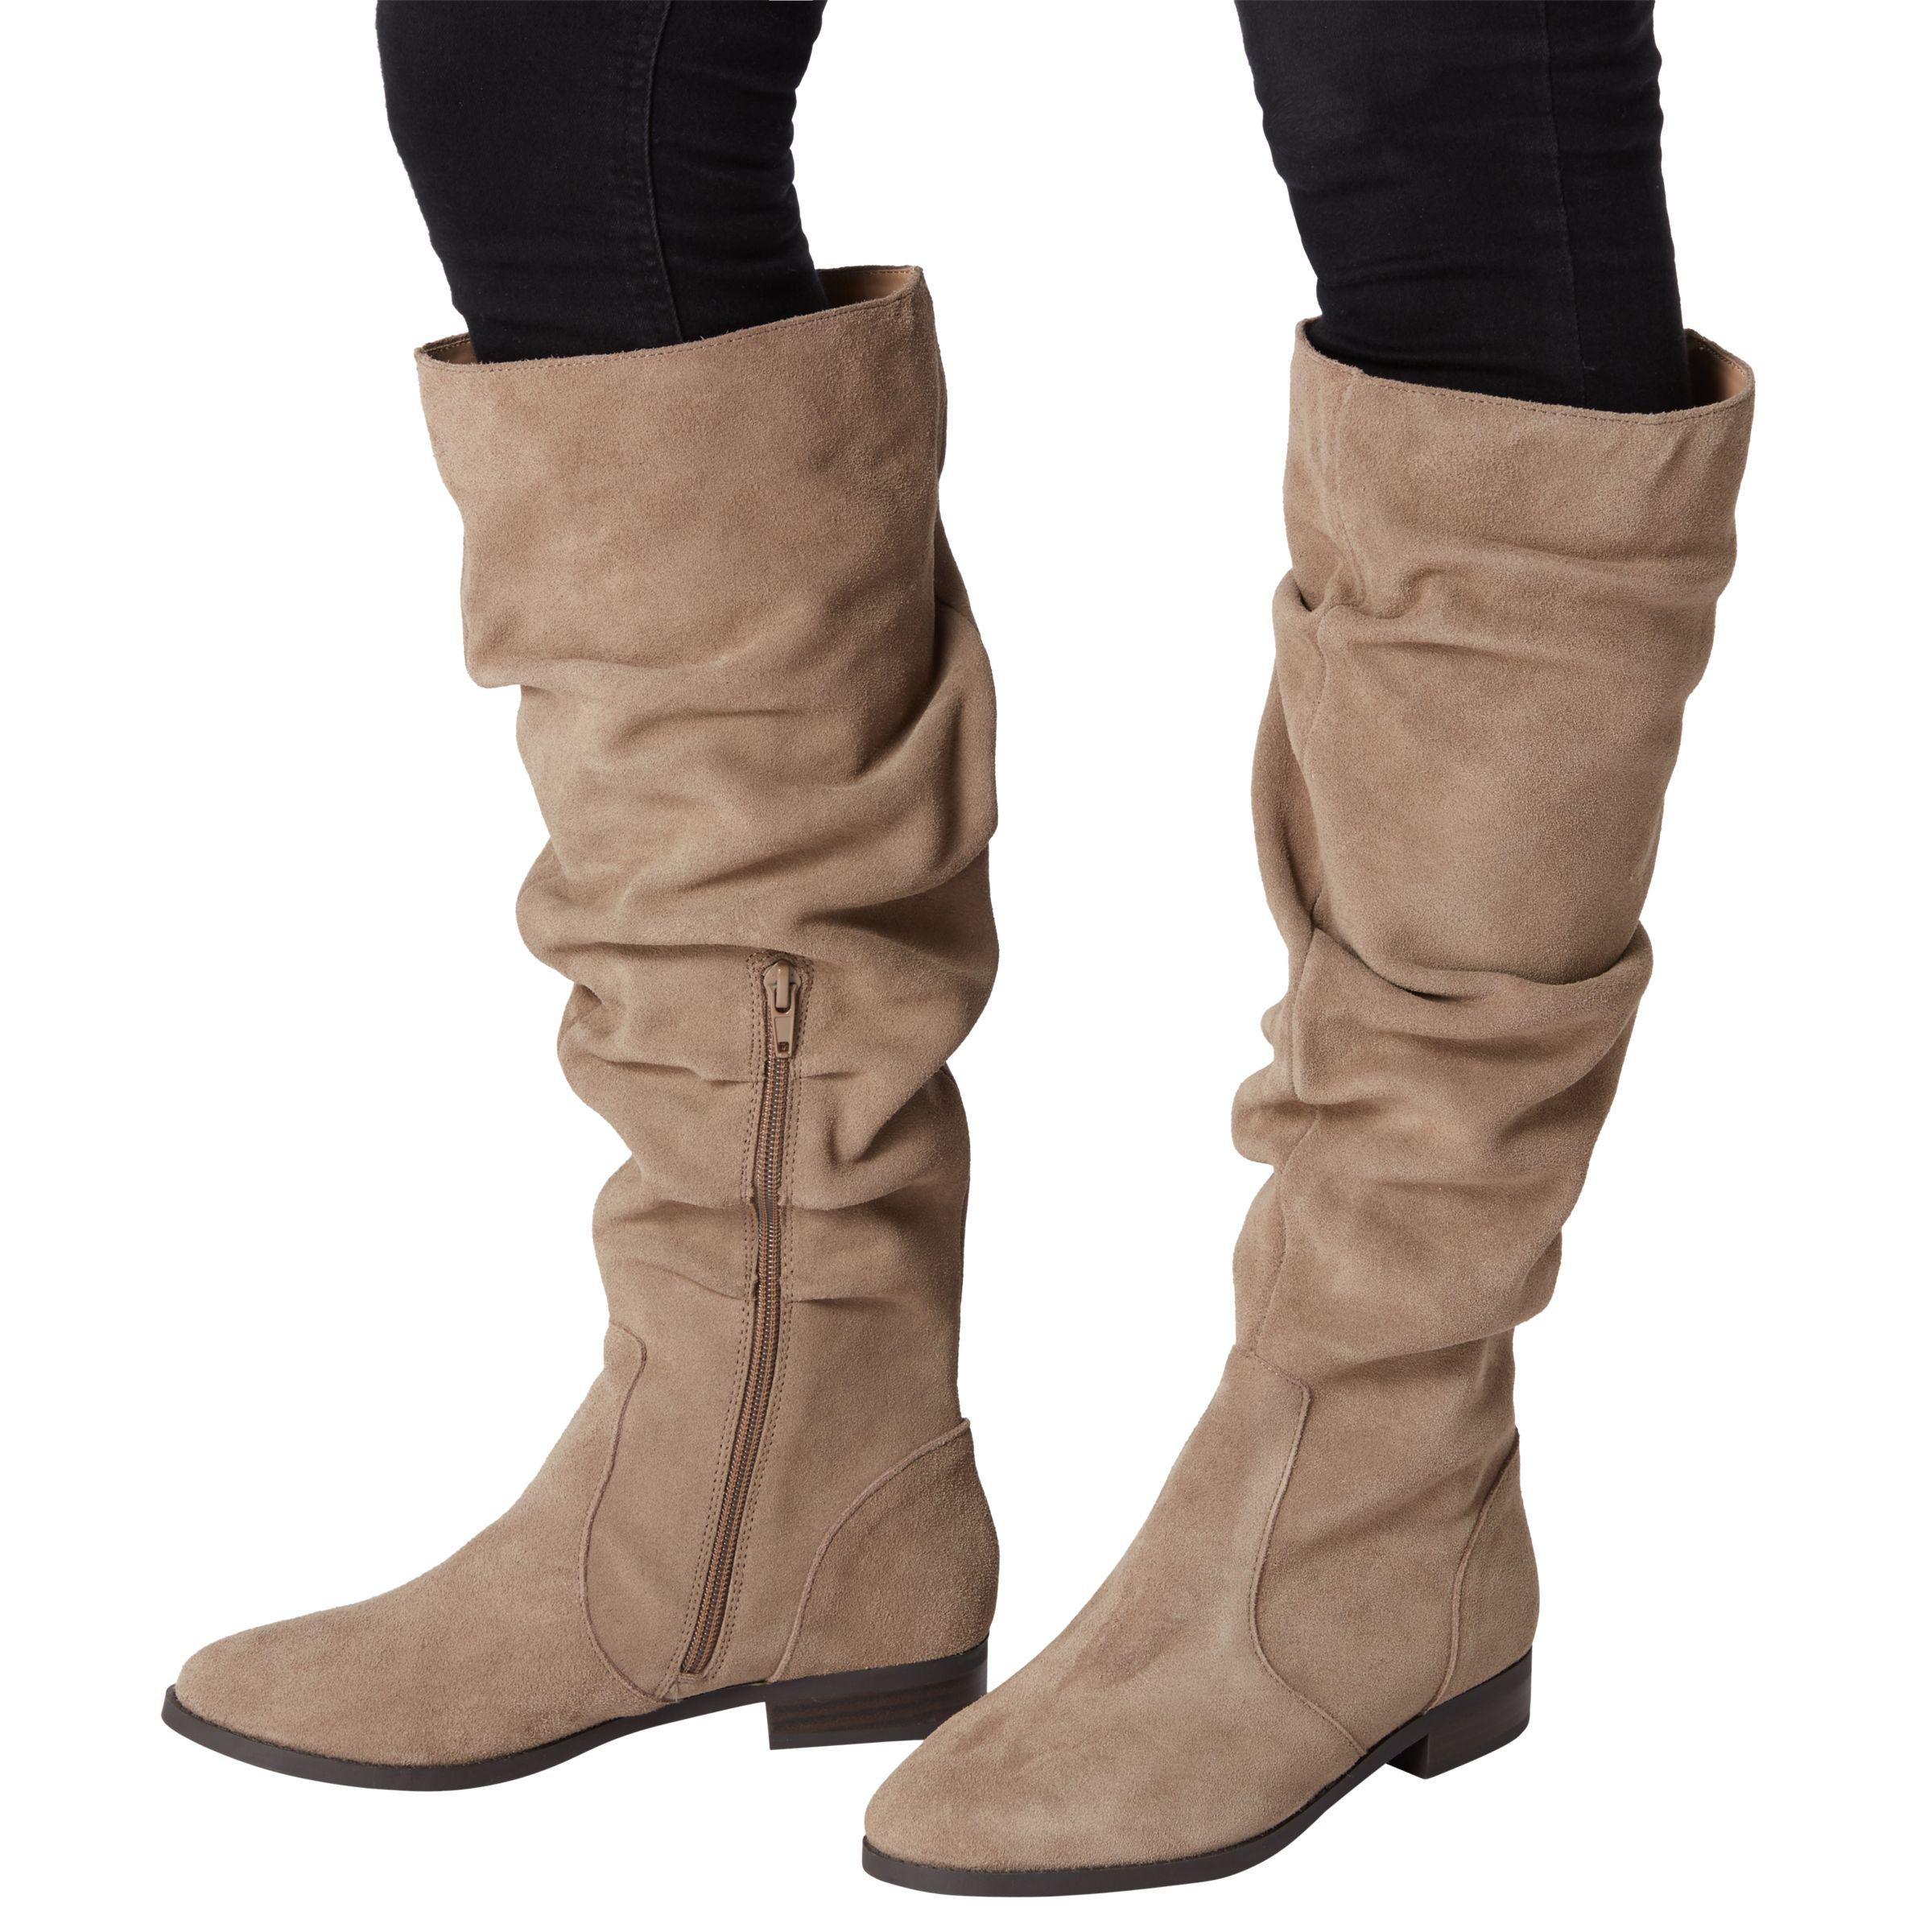 eccbb977ff8 Steve Madden Beacon Ruched Knee High Boots in Brown - Lyst